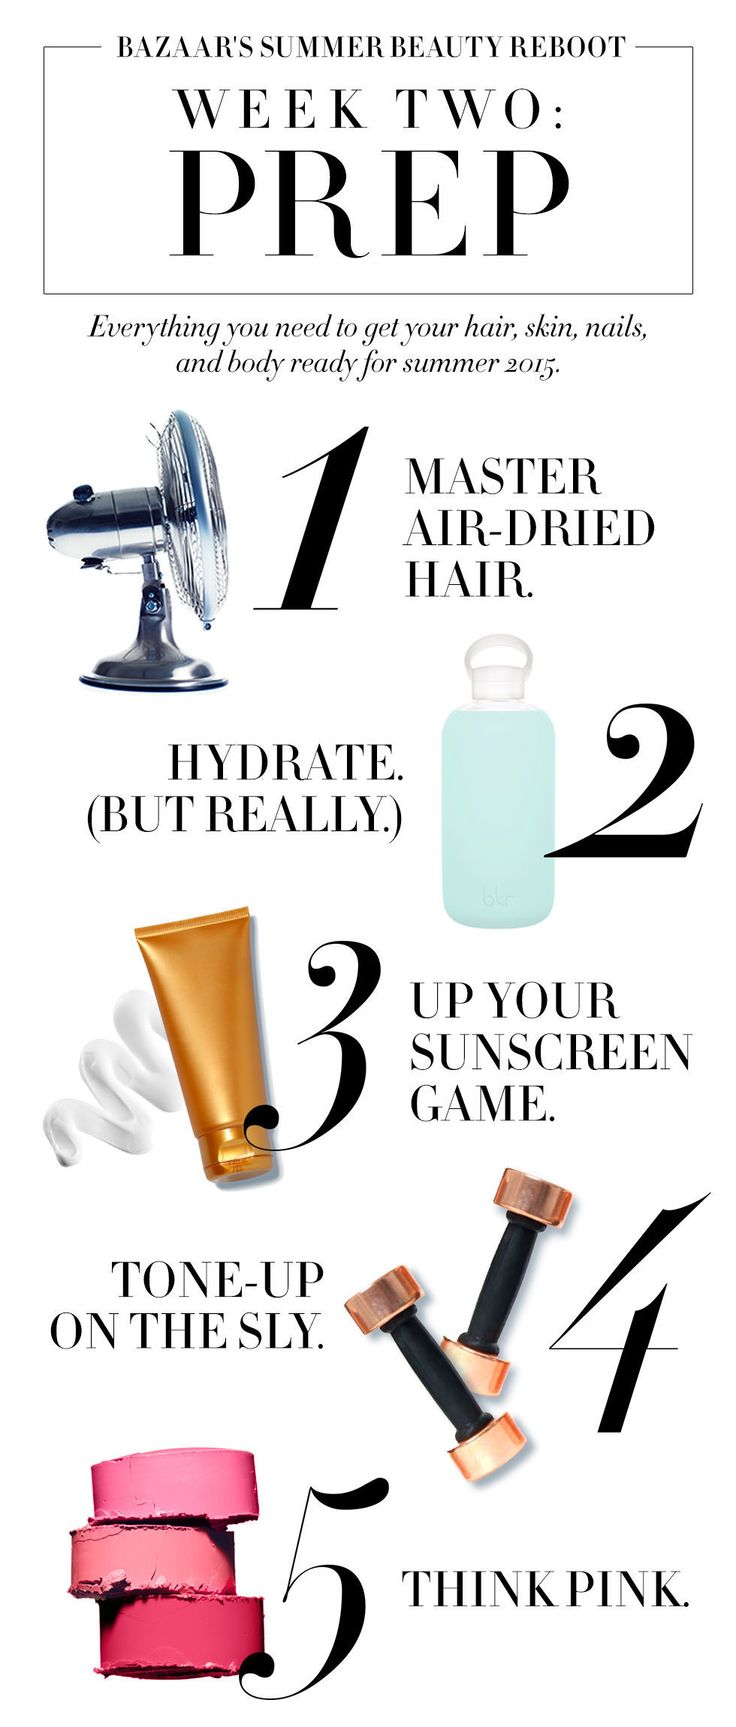 Stage 2 of BAZAAR's summer beauty prep: hydrate, tone up, and think pink.